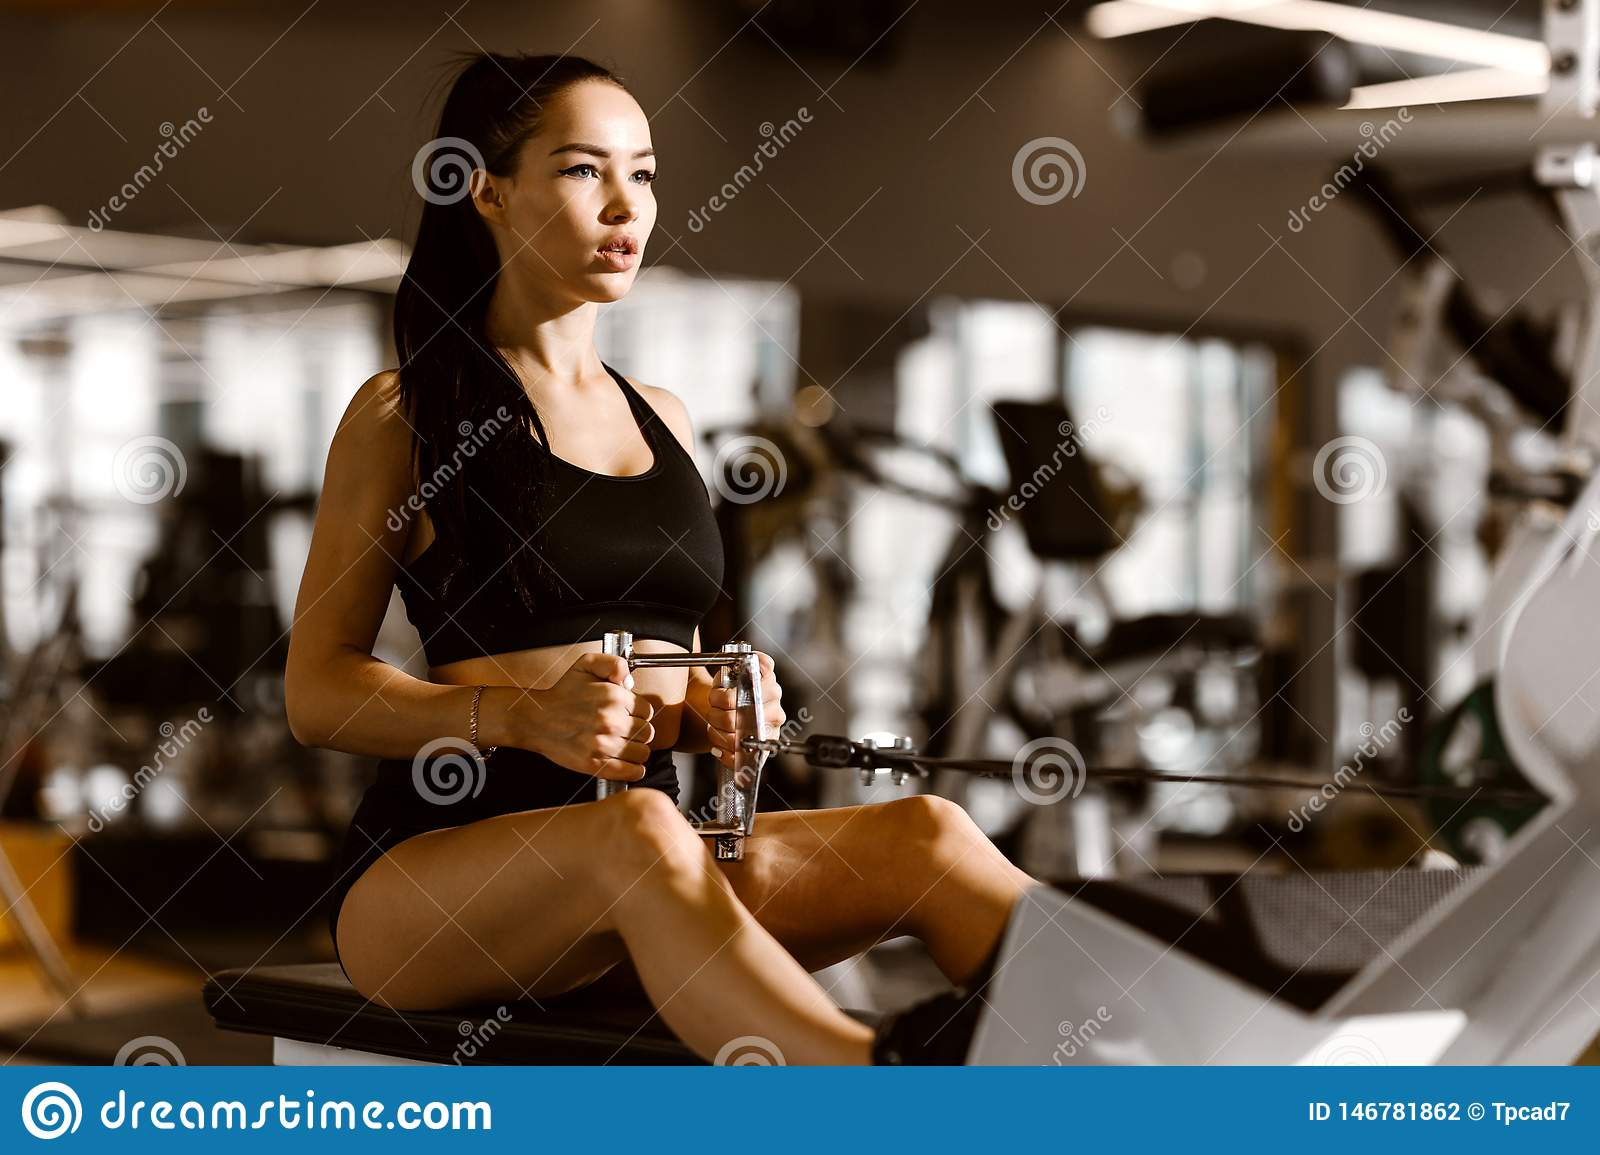 Young slender dark-haired girl dressed in black sports top and shorts is working out on the exercise machine in the gym